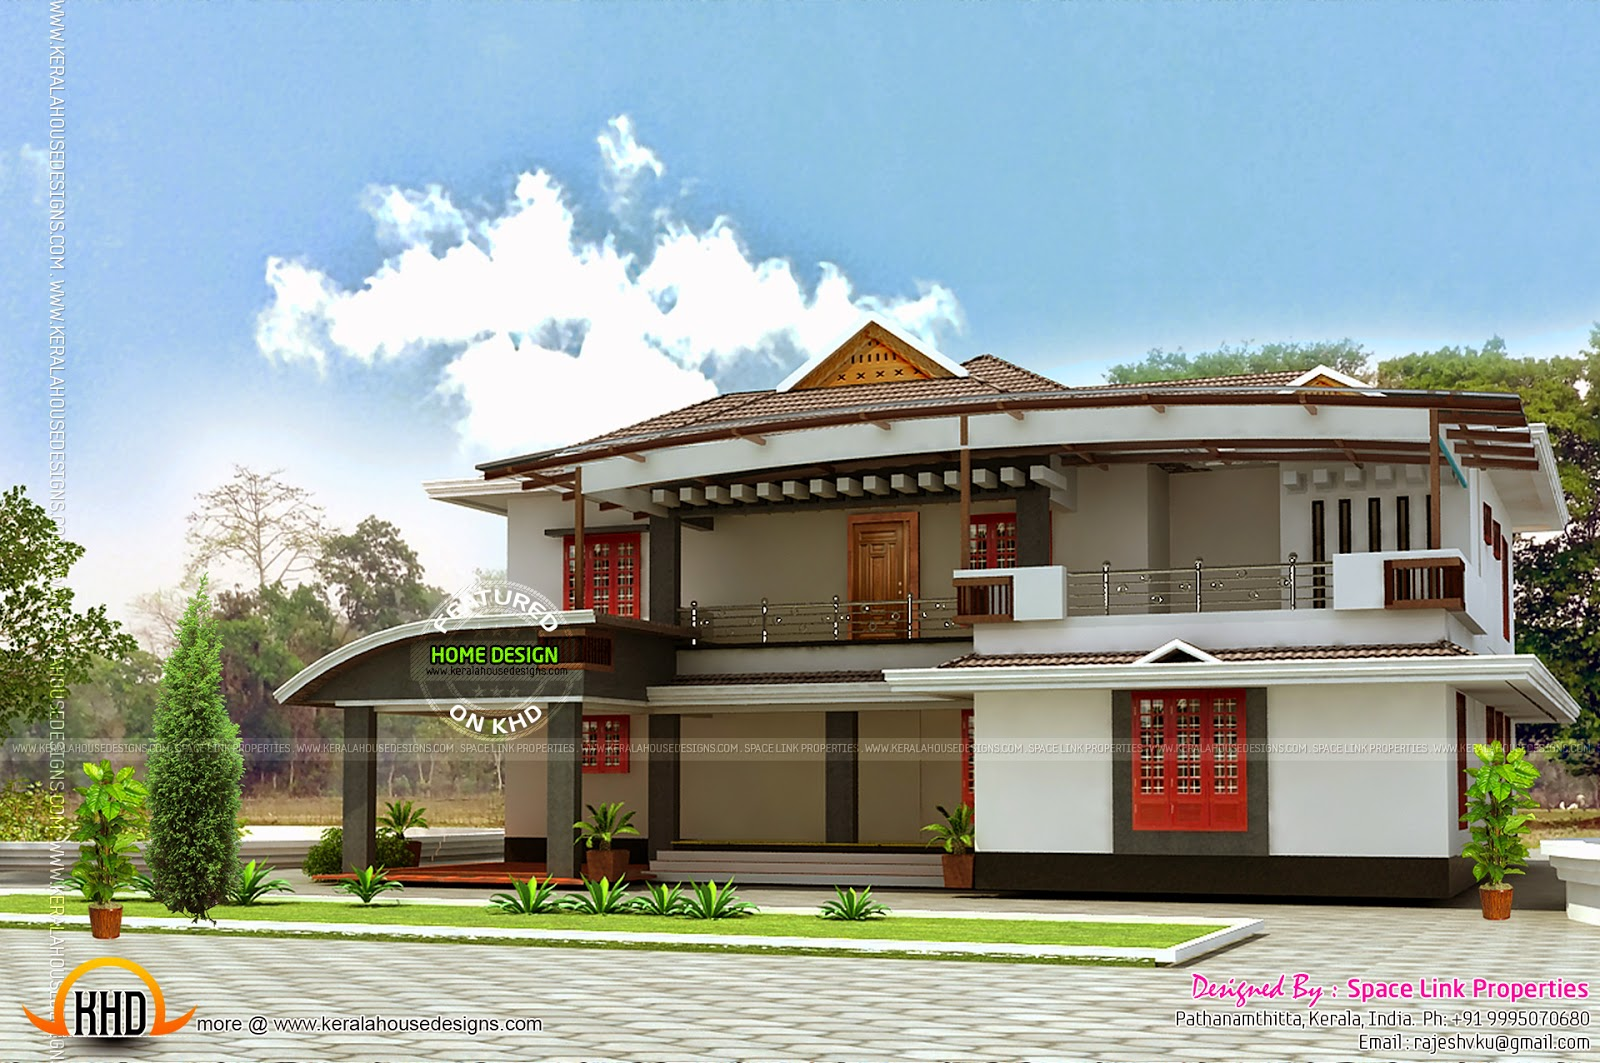 Home Design Front View - Front View House Plans - Scornavi.com